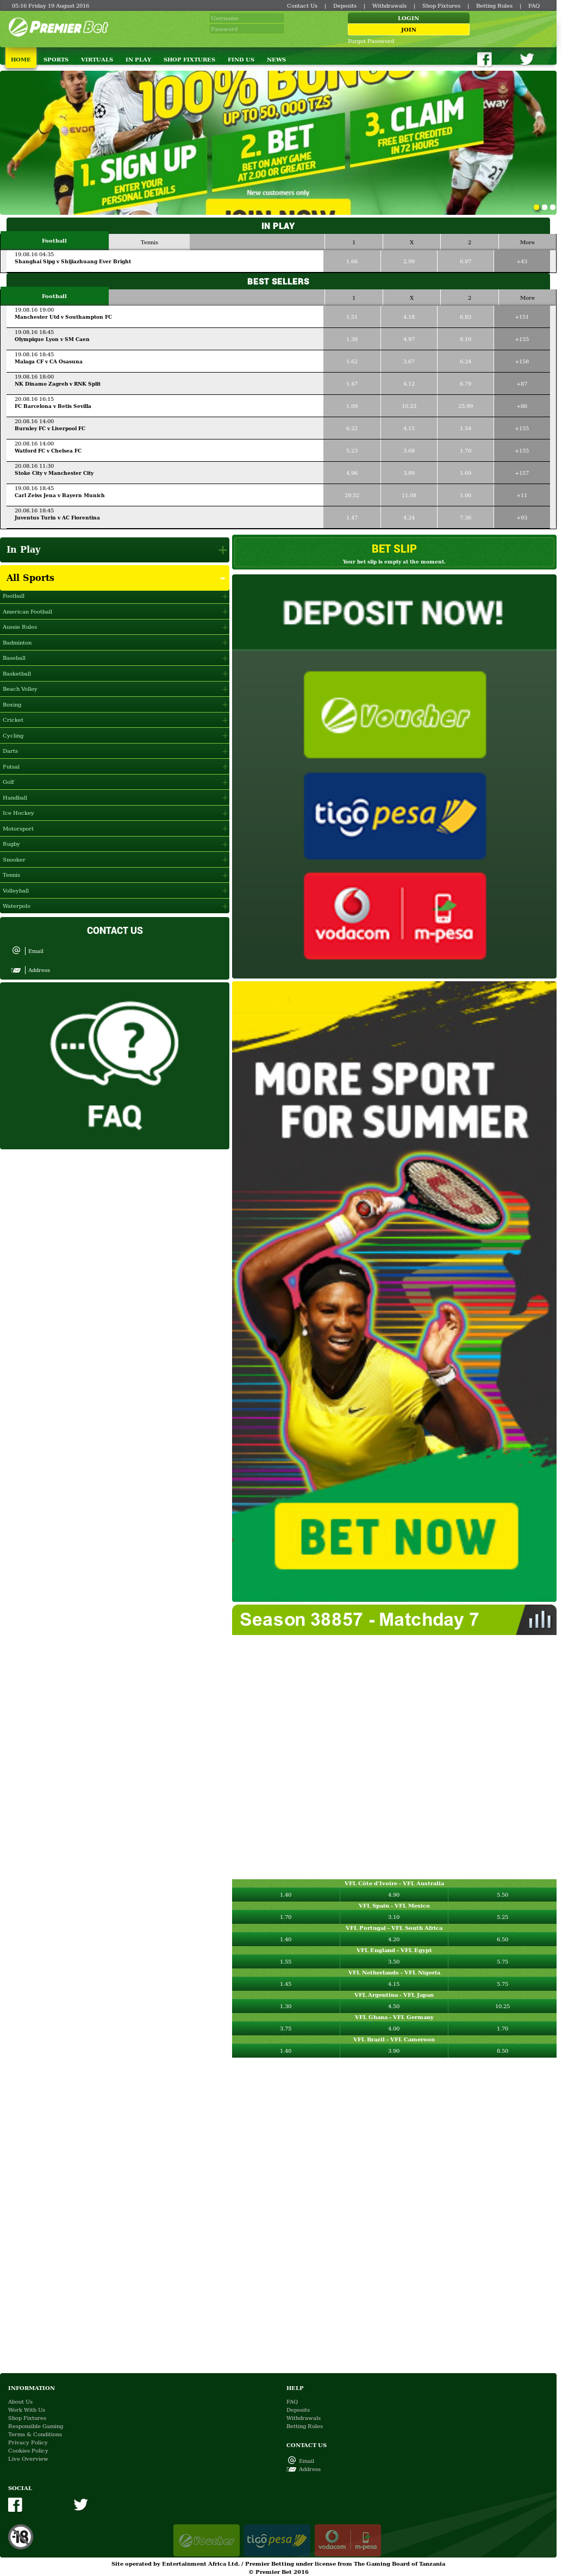 Premier betting tanzania results of texas is sports betting legal in california